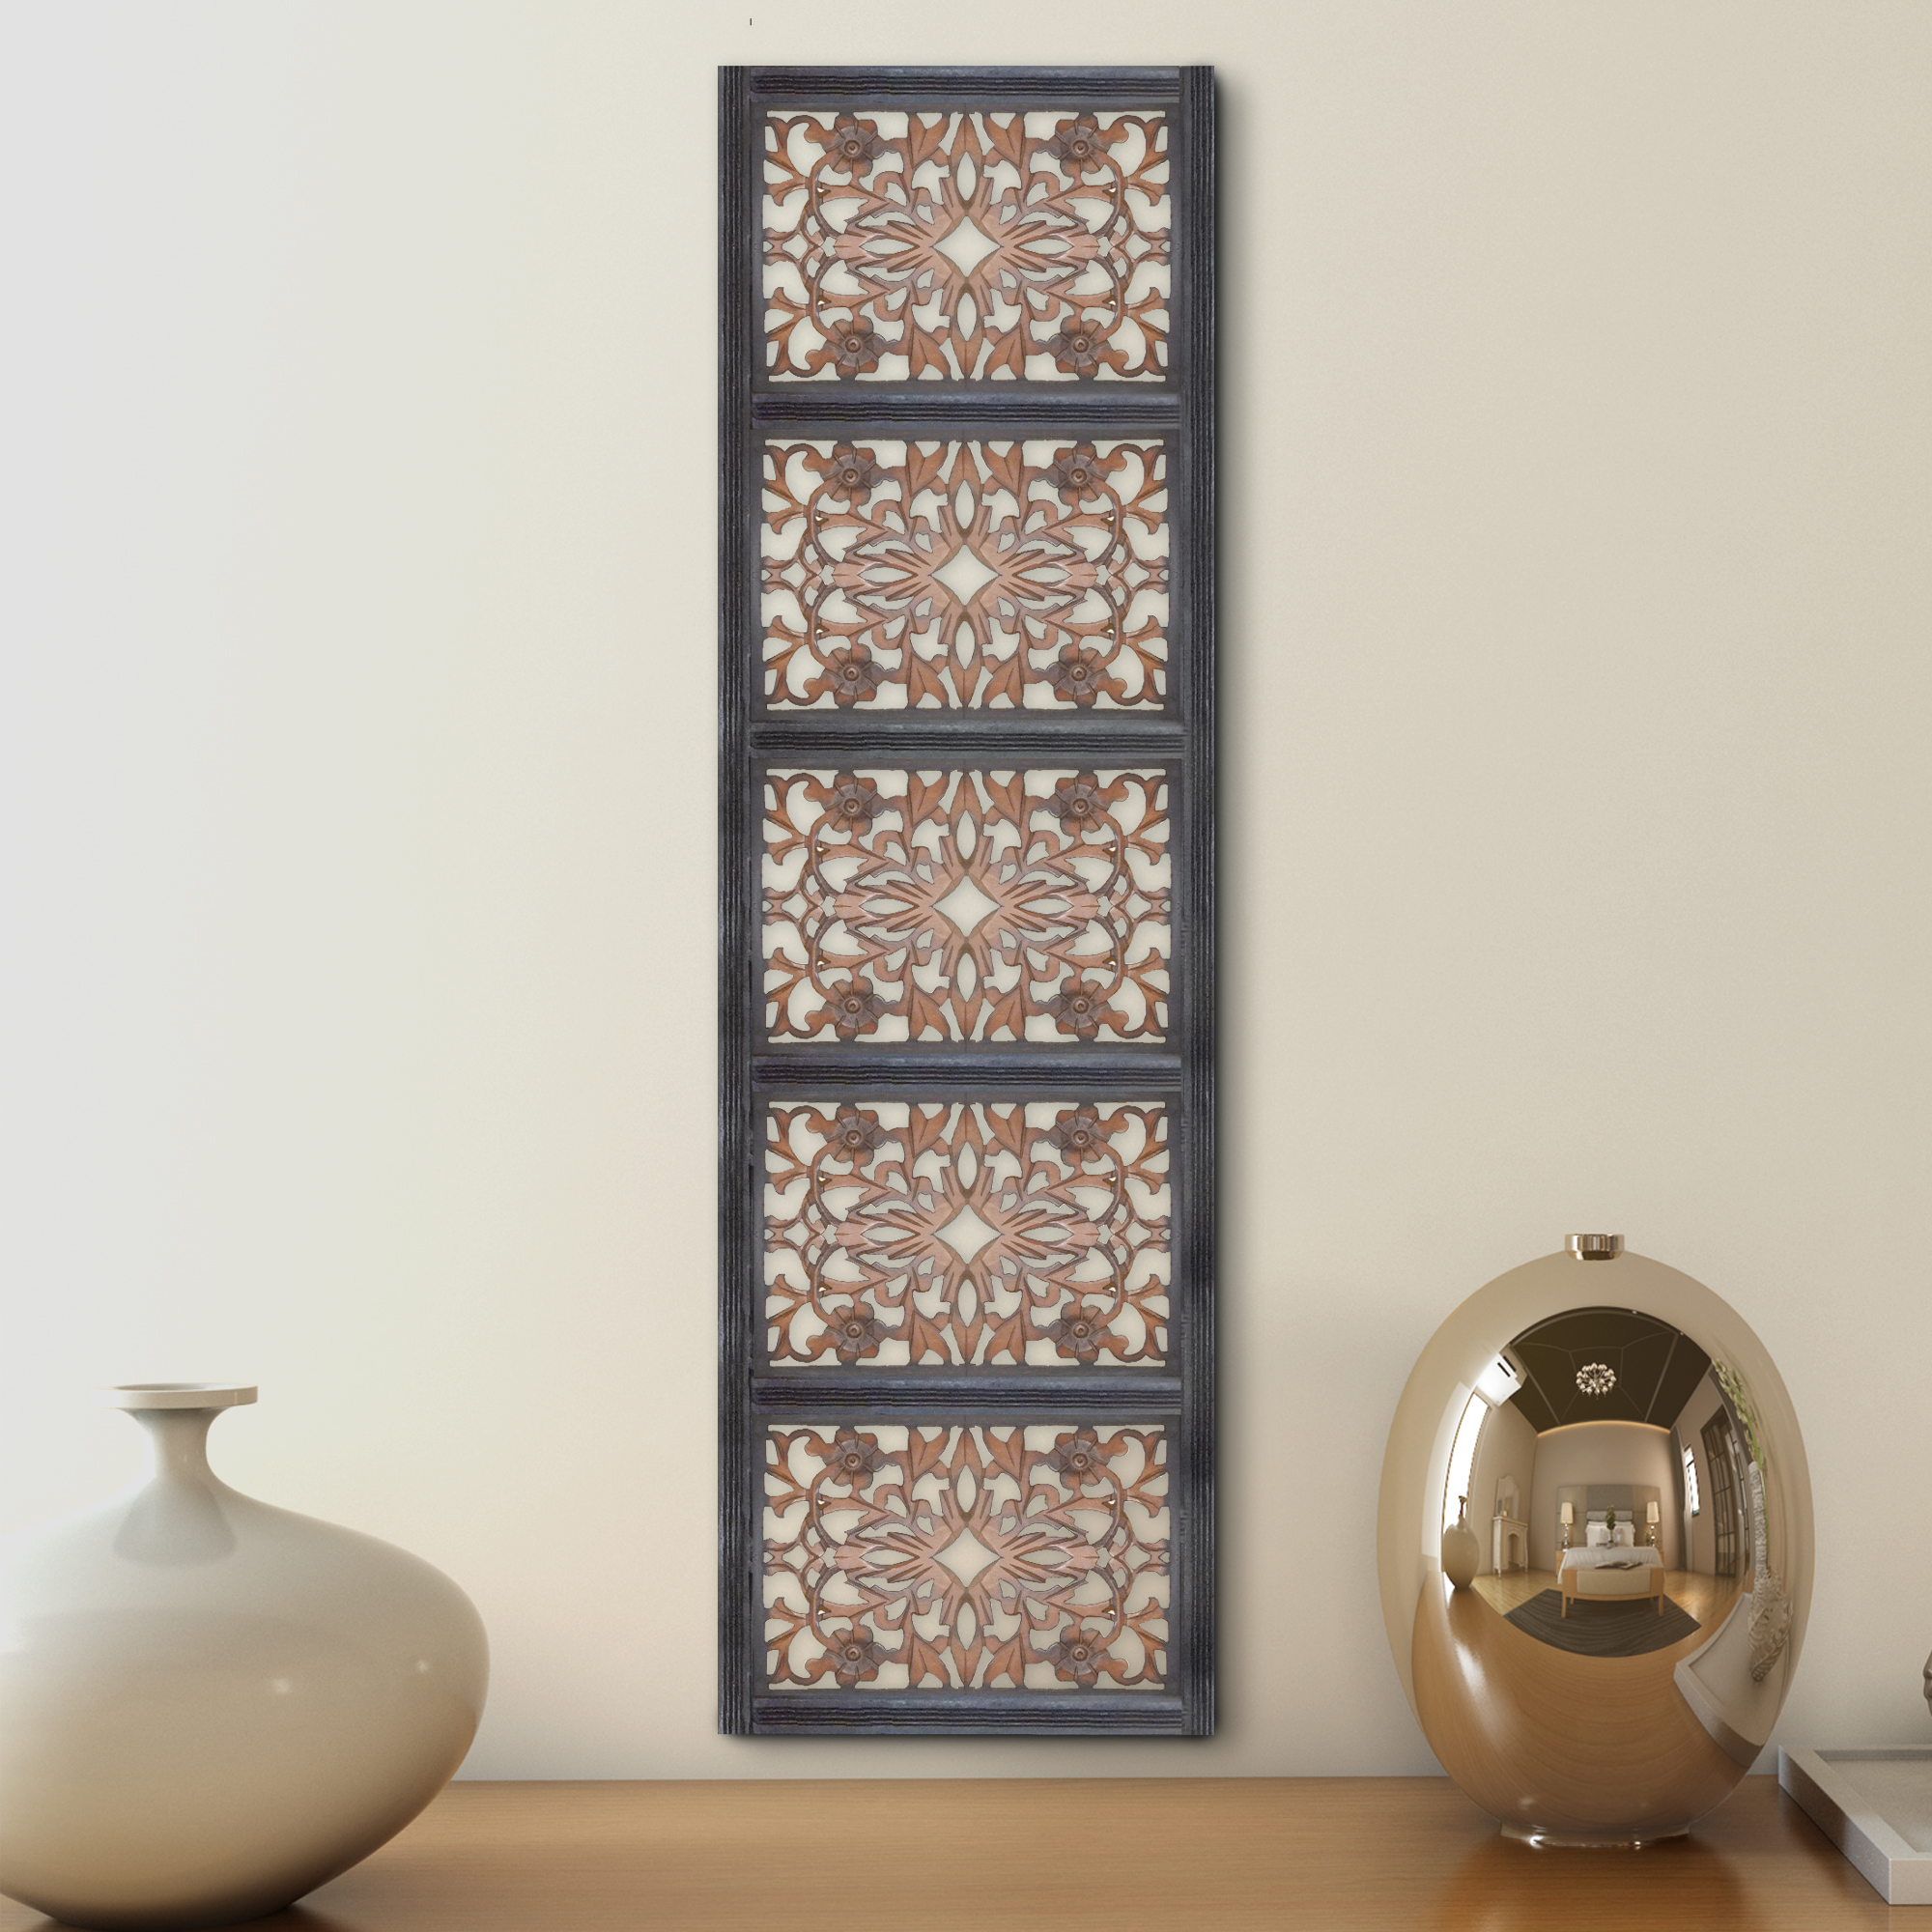 Wall Panel Rectangular Art Design With Intricate Floral Carvings Design, Burnt Black